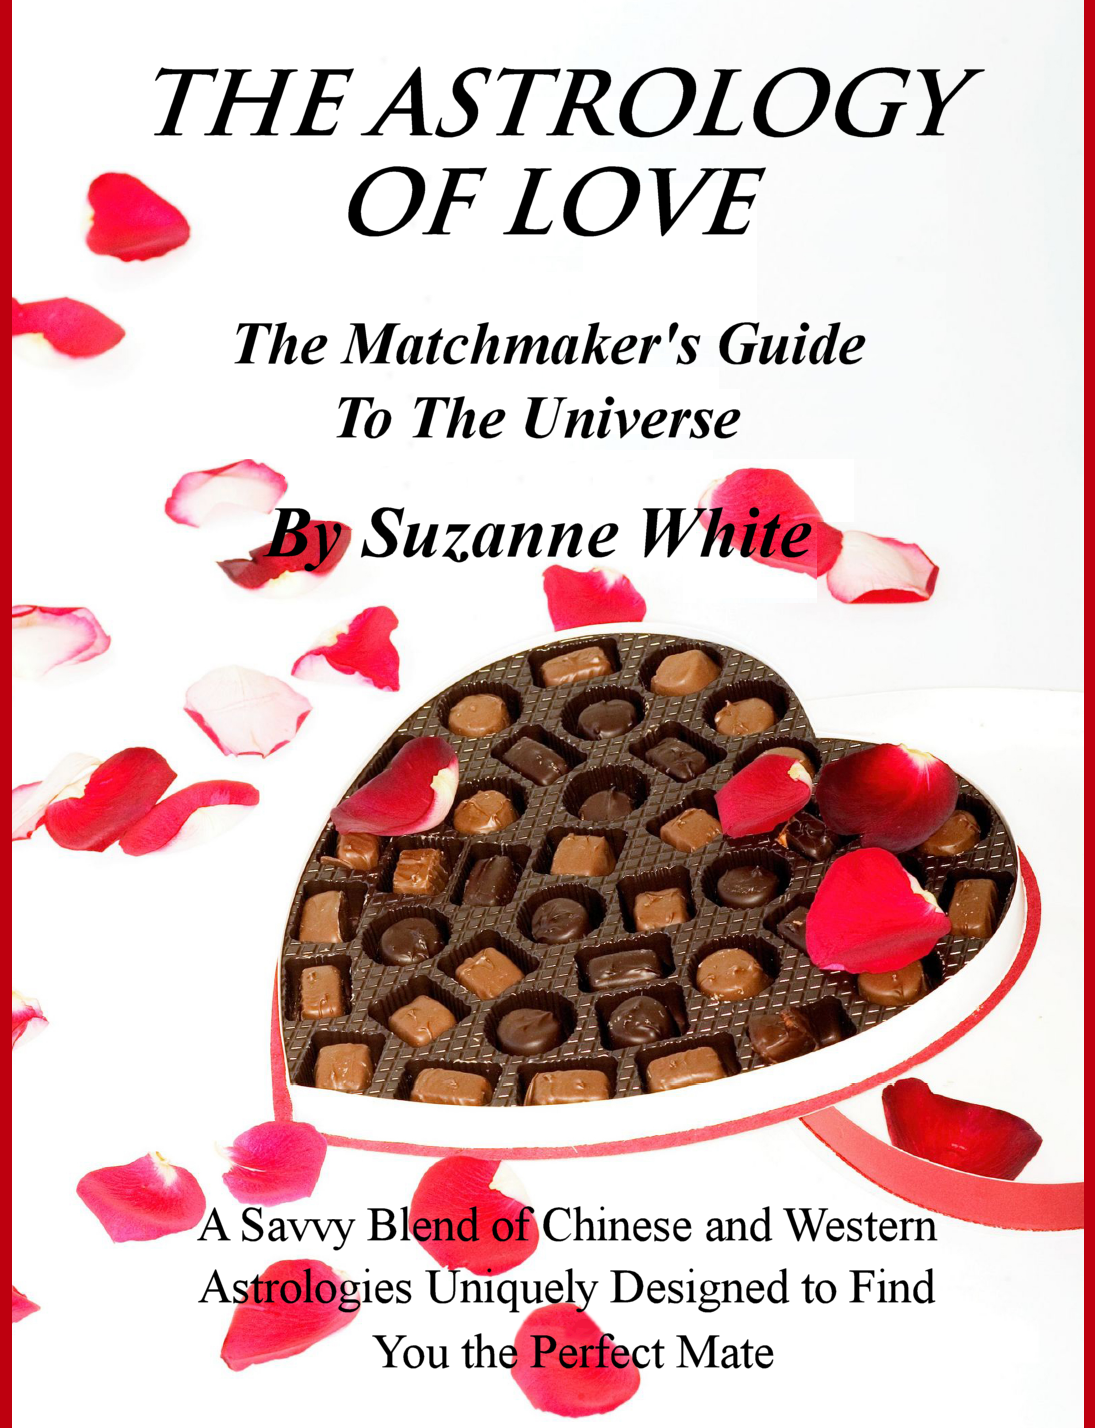 Suzanne White - THE ASTROLOGY OF LOVE